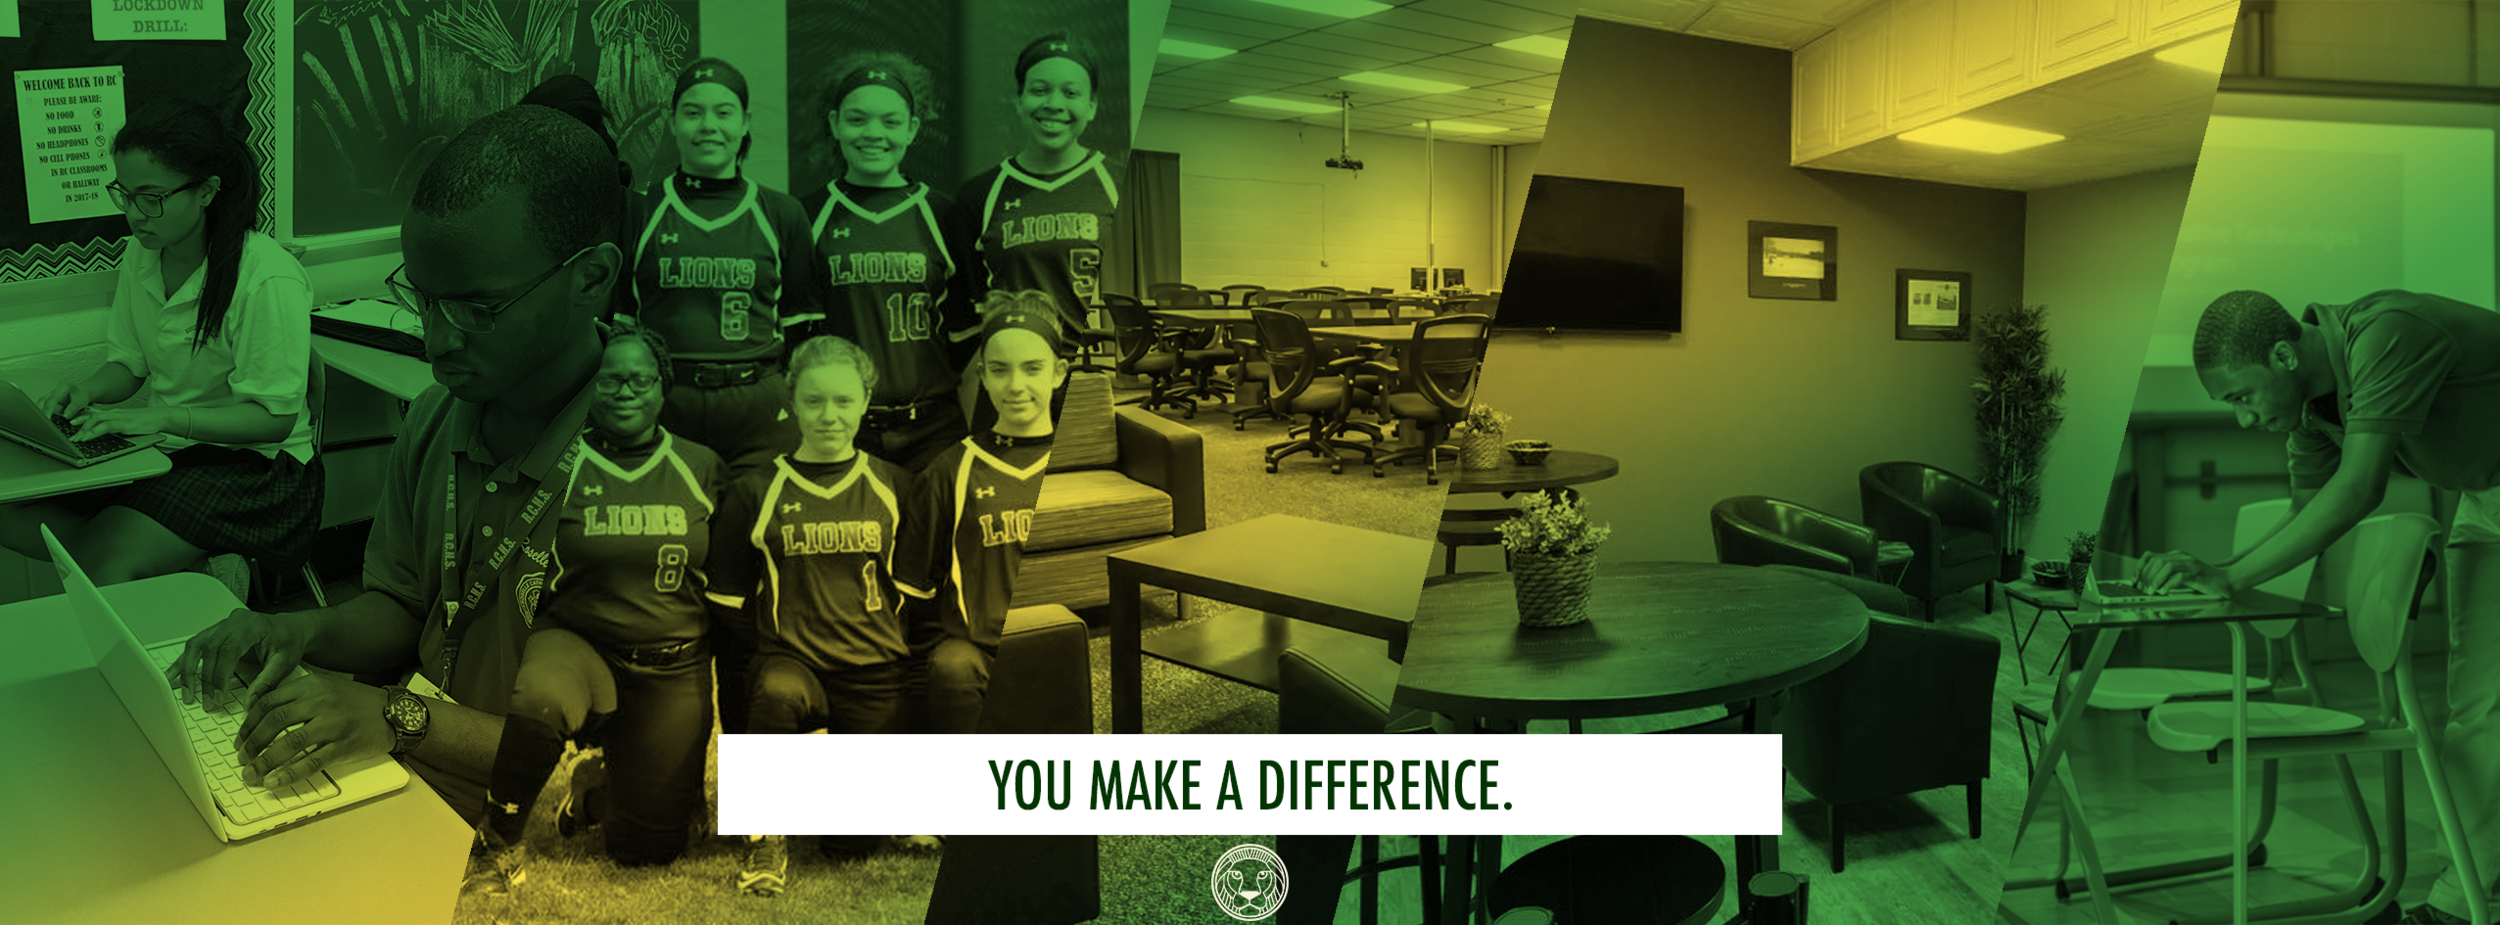 With every donation, with every event attended, with every ounce of support, you've made a difference in someone's life. You singlehandedly enhanced the Roselle Catholic experience for even one person. And for that alone, we thank you.